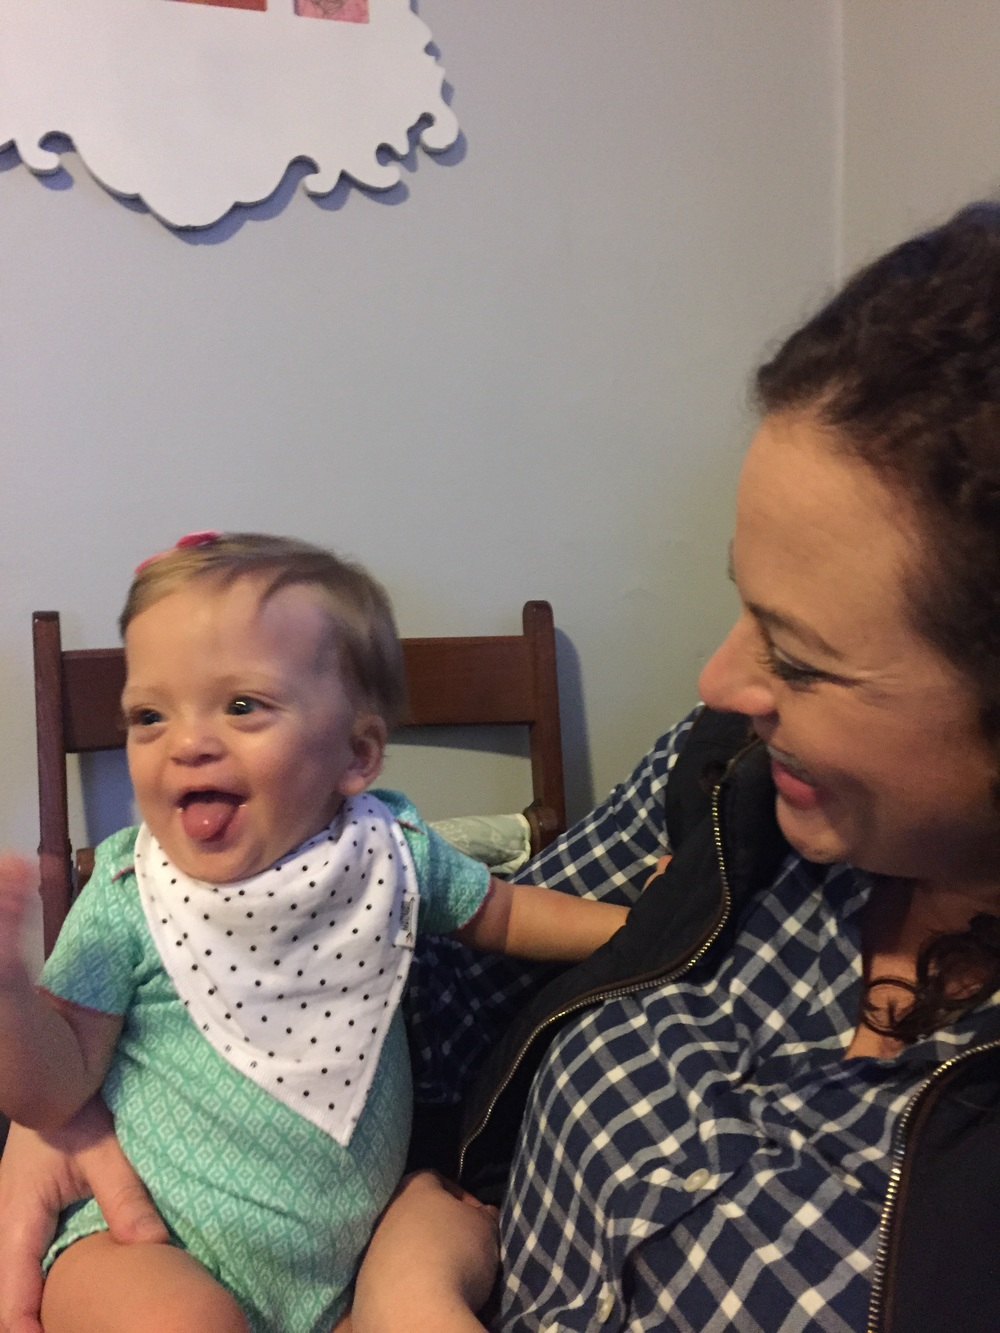 Reunited with her God Nurse from the NICU! All smiles.